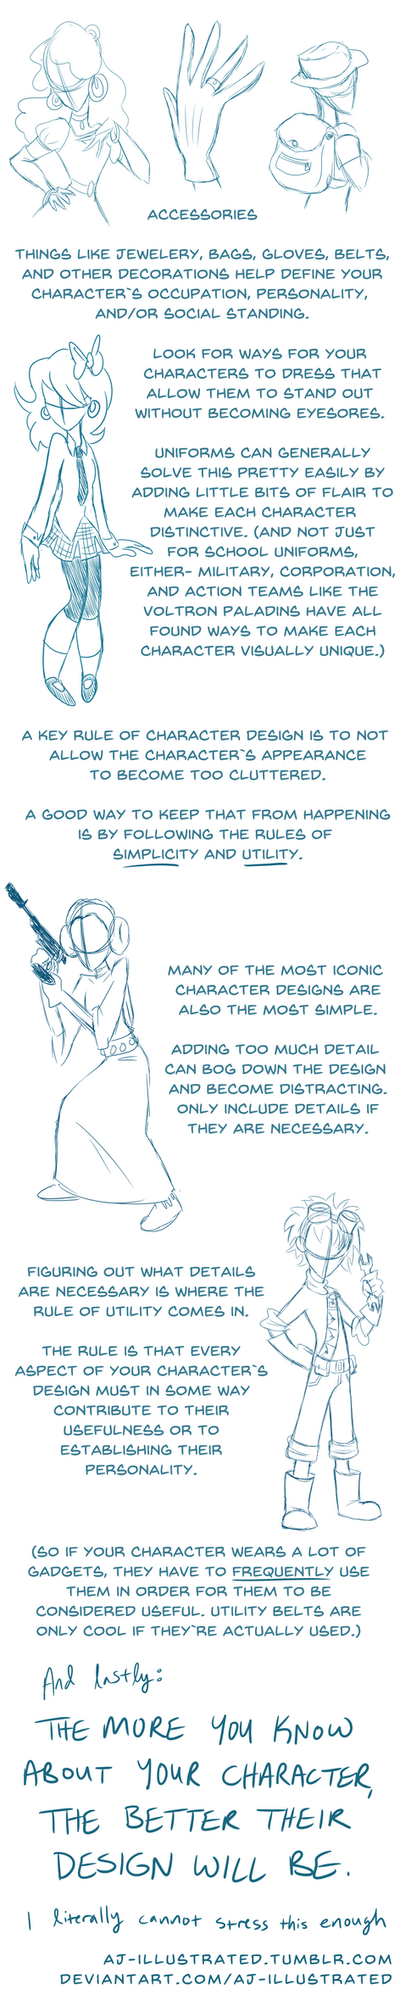 Tutorial - Designing Character Clothing 2 by AJ-illustrated